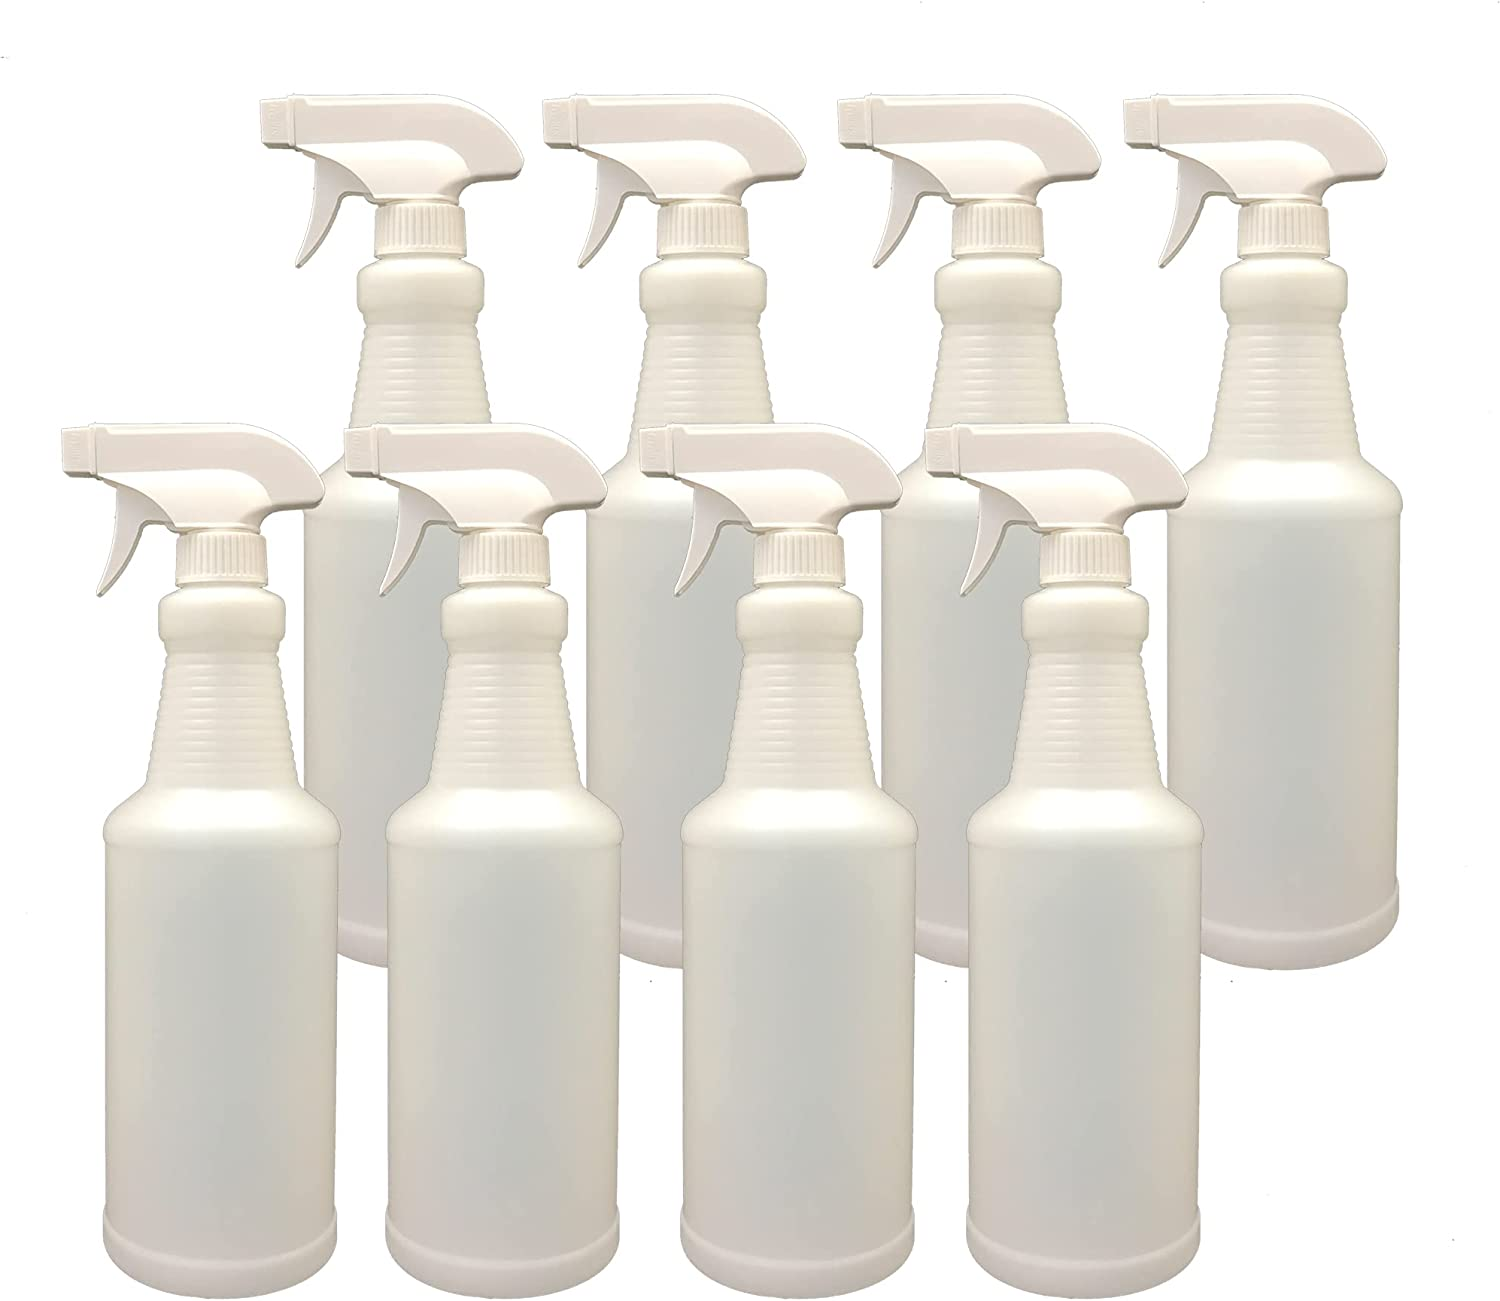 Plastic Spray Bottle with Adjustable Kansas City Mall Nozzle All-Purpose 32oz S 55% OFF